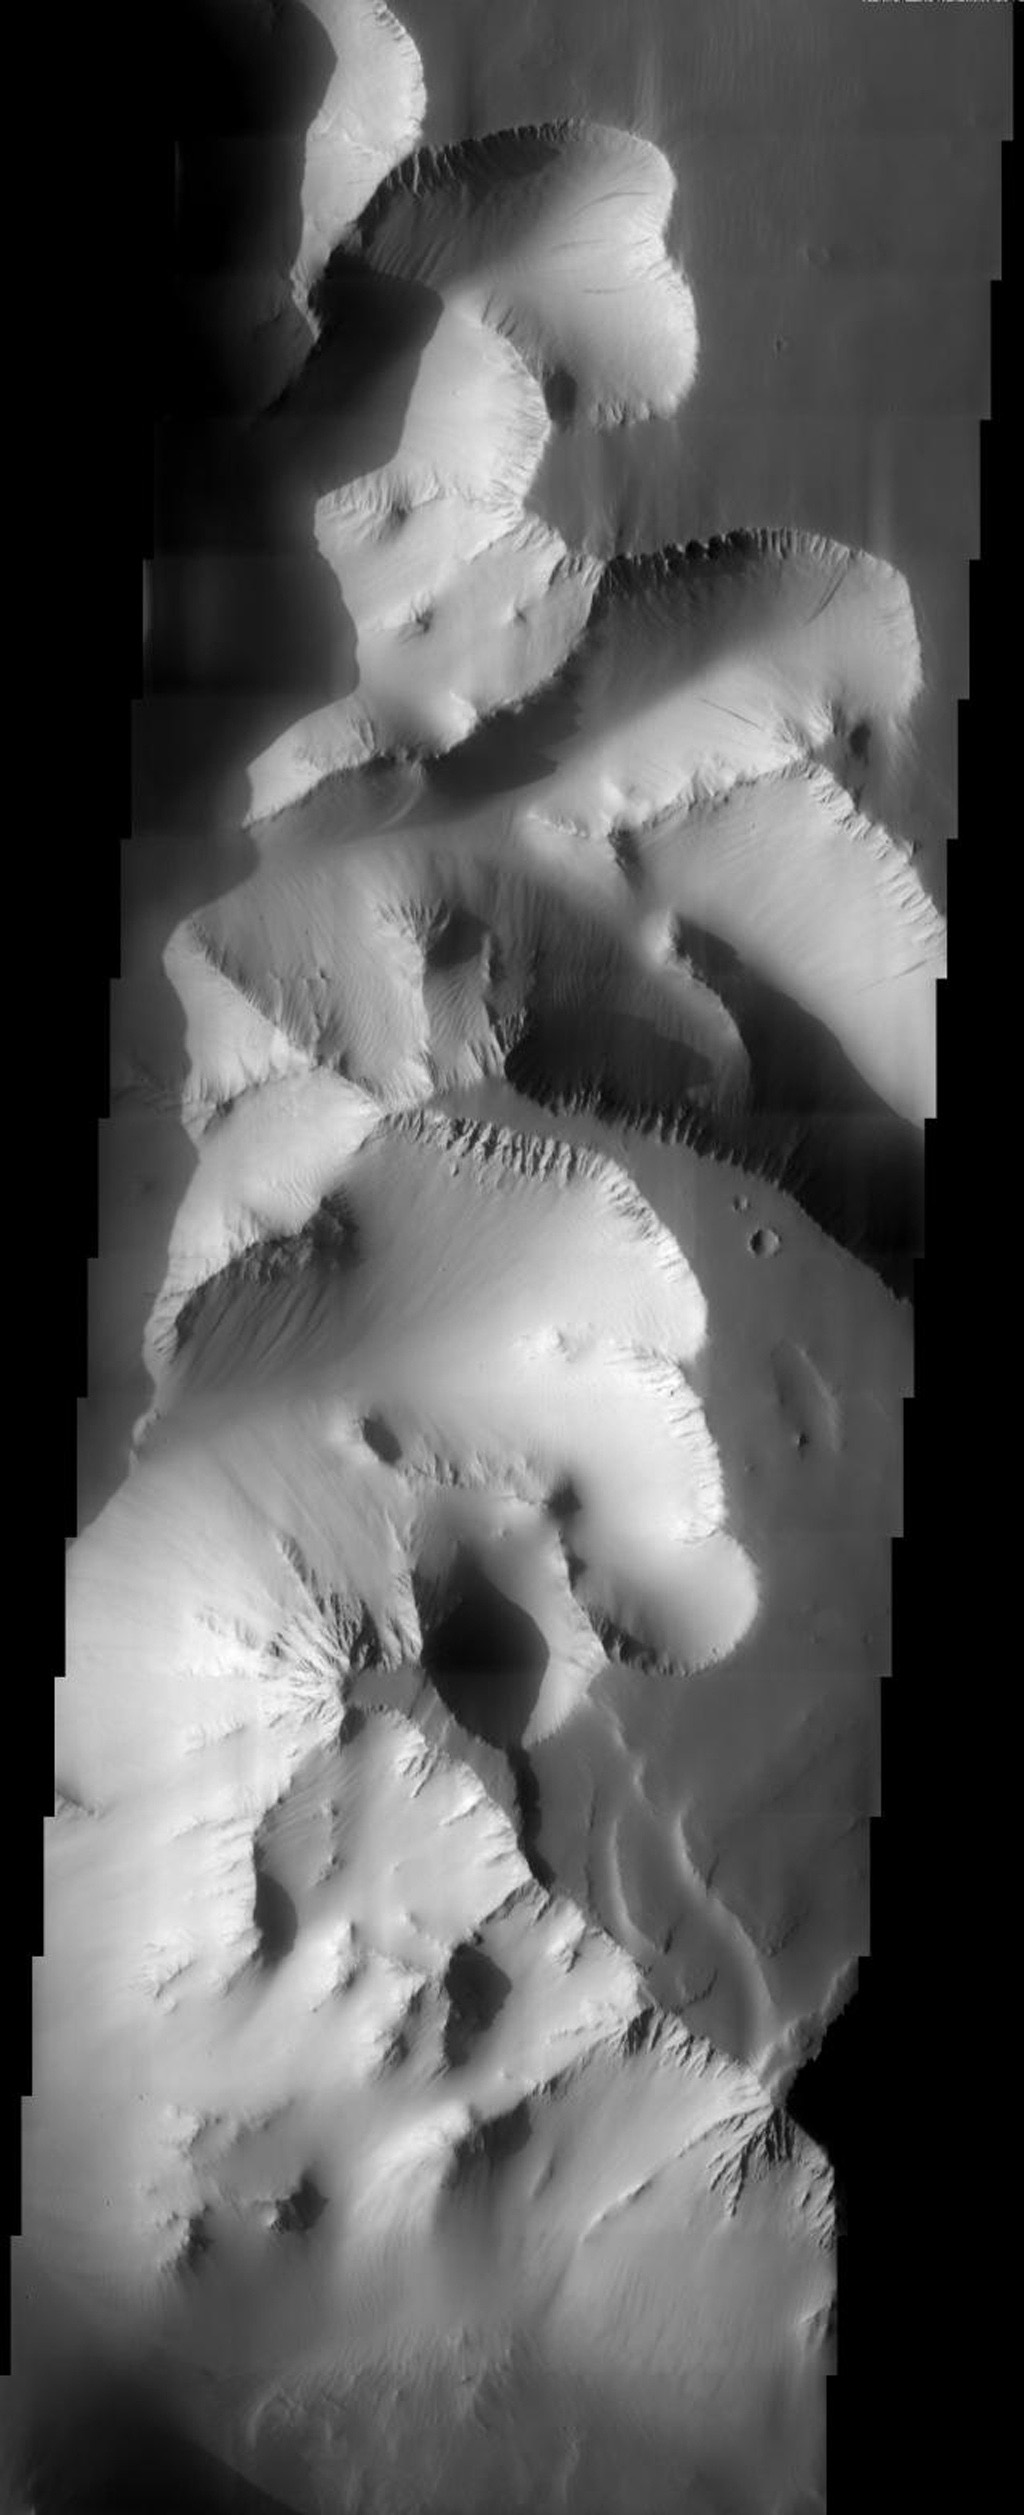 This image taken by NASA's 2001 Mars Odyssey shows high canyon walls of Valles Marineris on Mars. Geologic materials that are more resistant to erosion produce cliff forming units while landslides and streaks are observed on slope units.